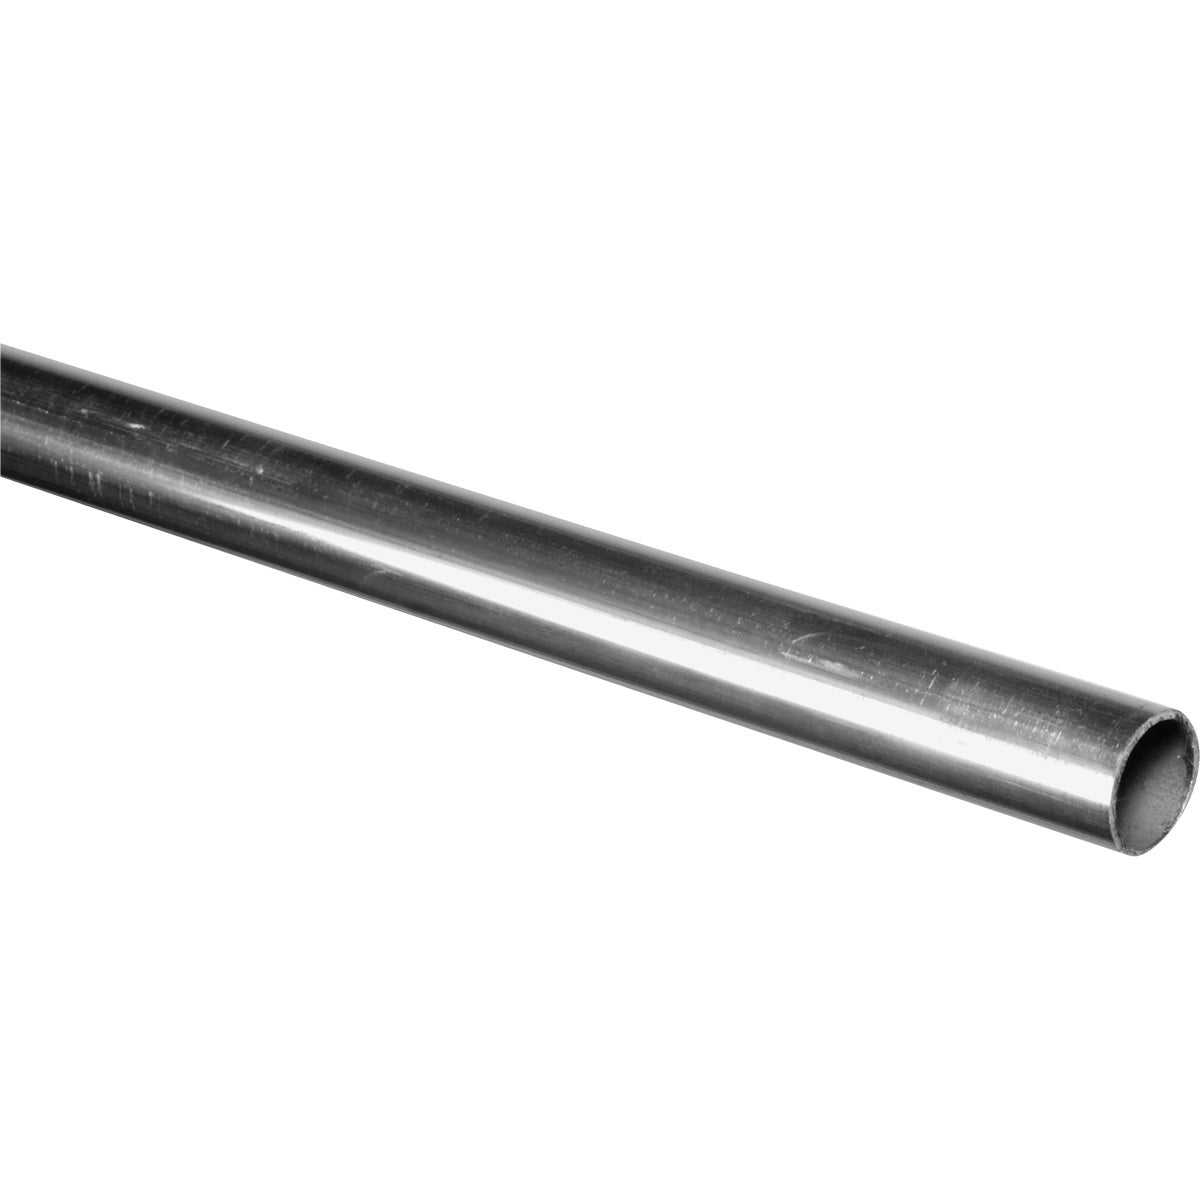 1X1/16X48 RND MILL TUBE - N247585 by National Mfg Co